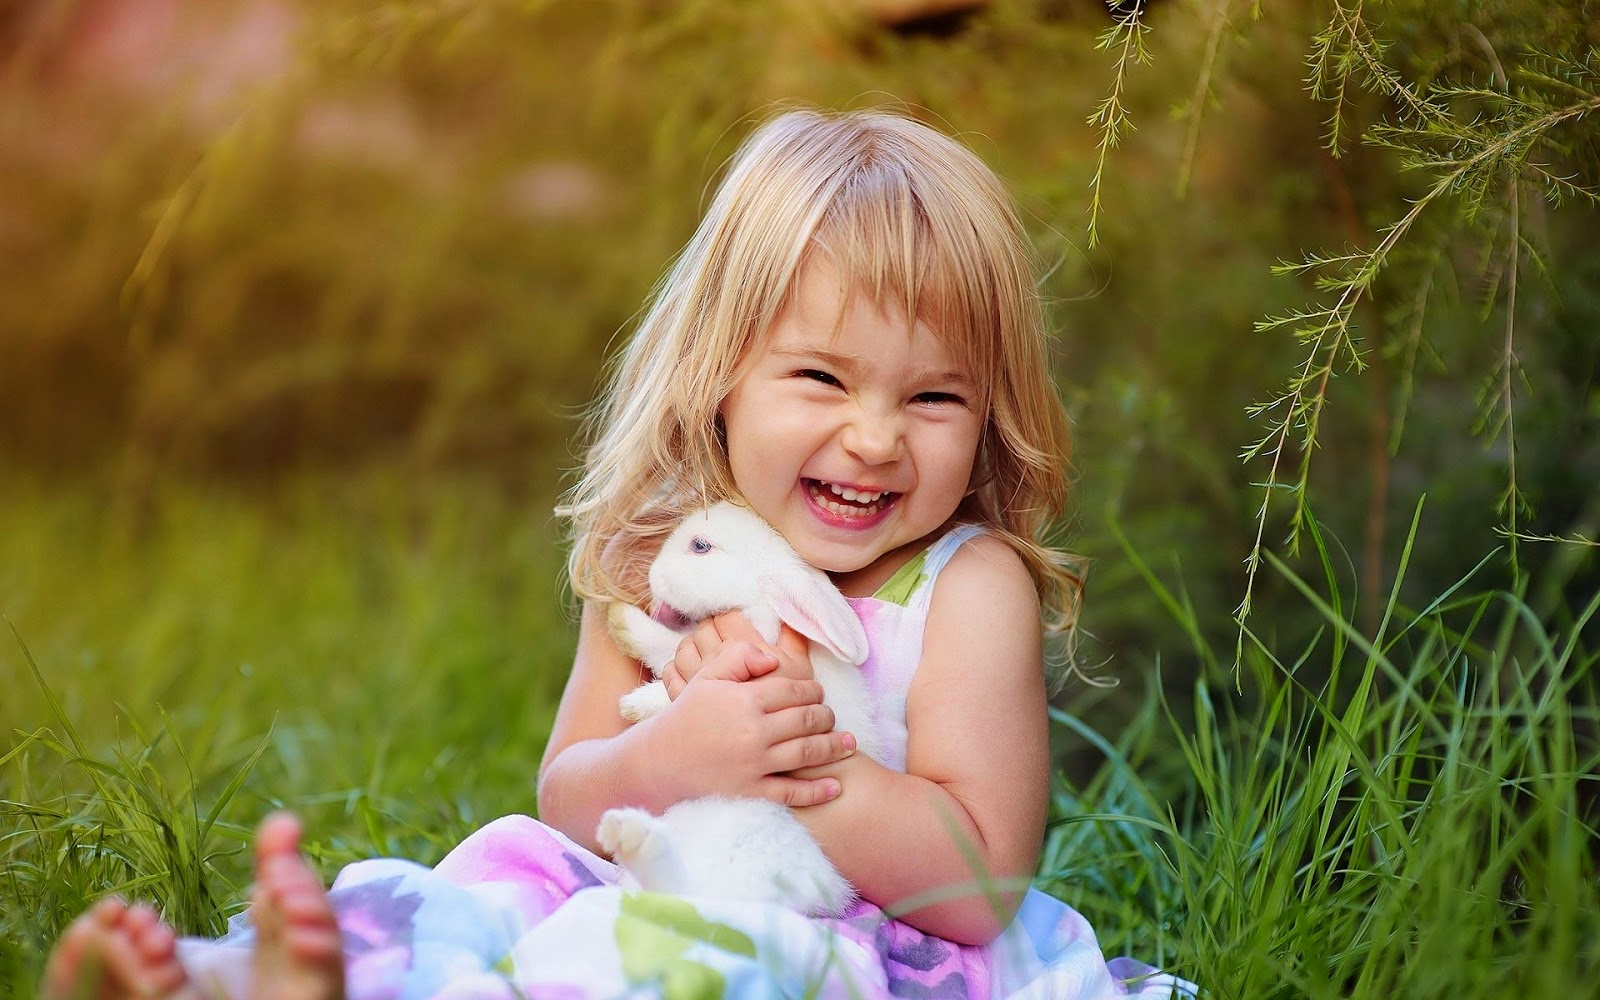 10 cute girl hd wallpapers explore wallpaper baby laughing download hd wallpaperz qklaos thecheapjerseys Choice Image